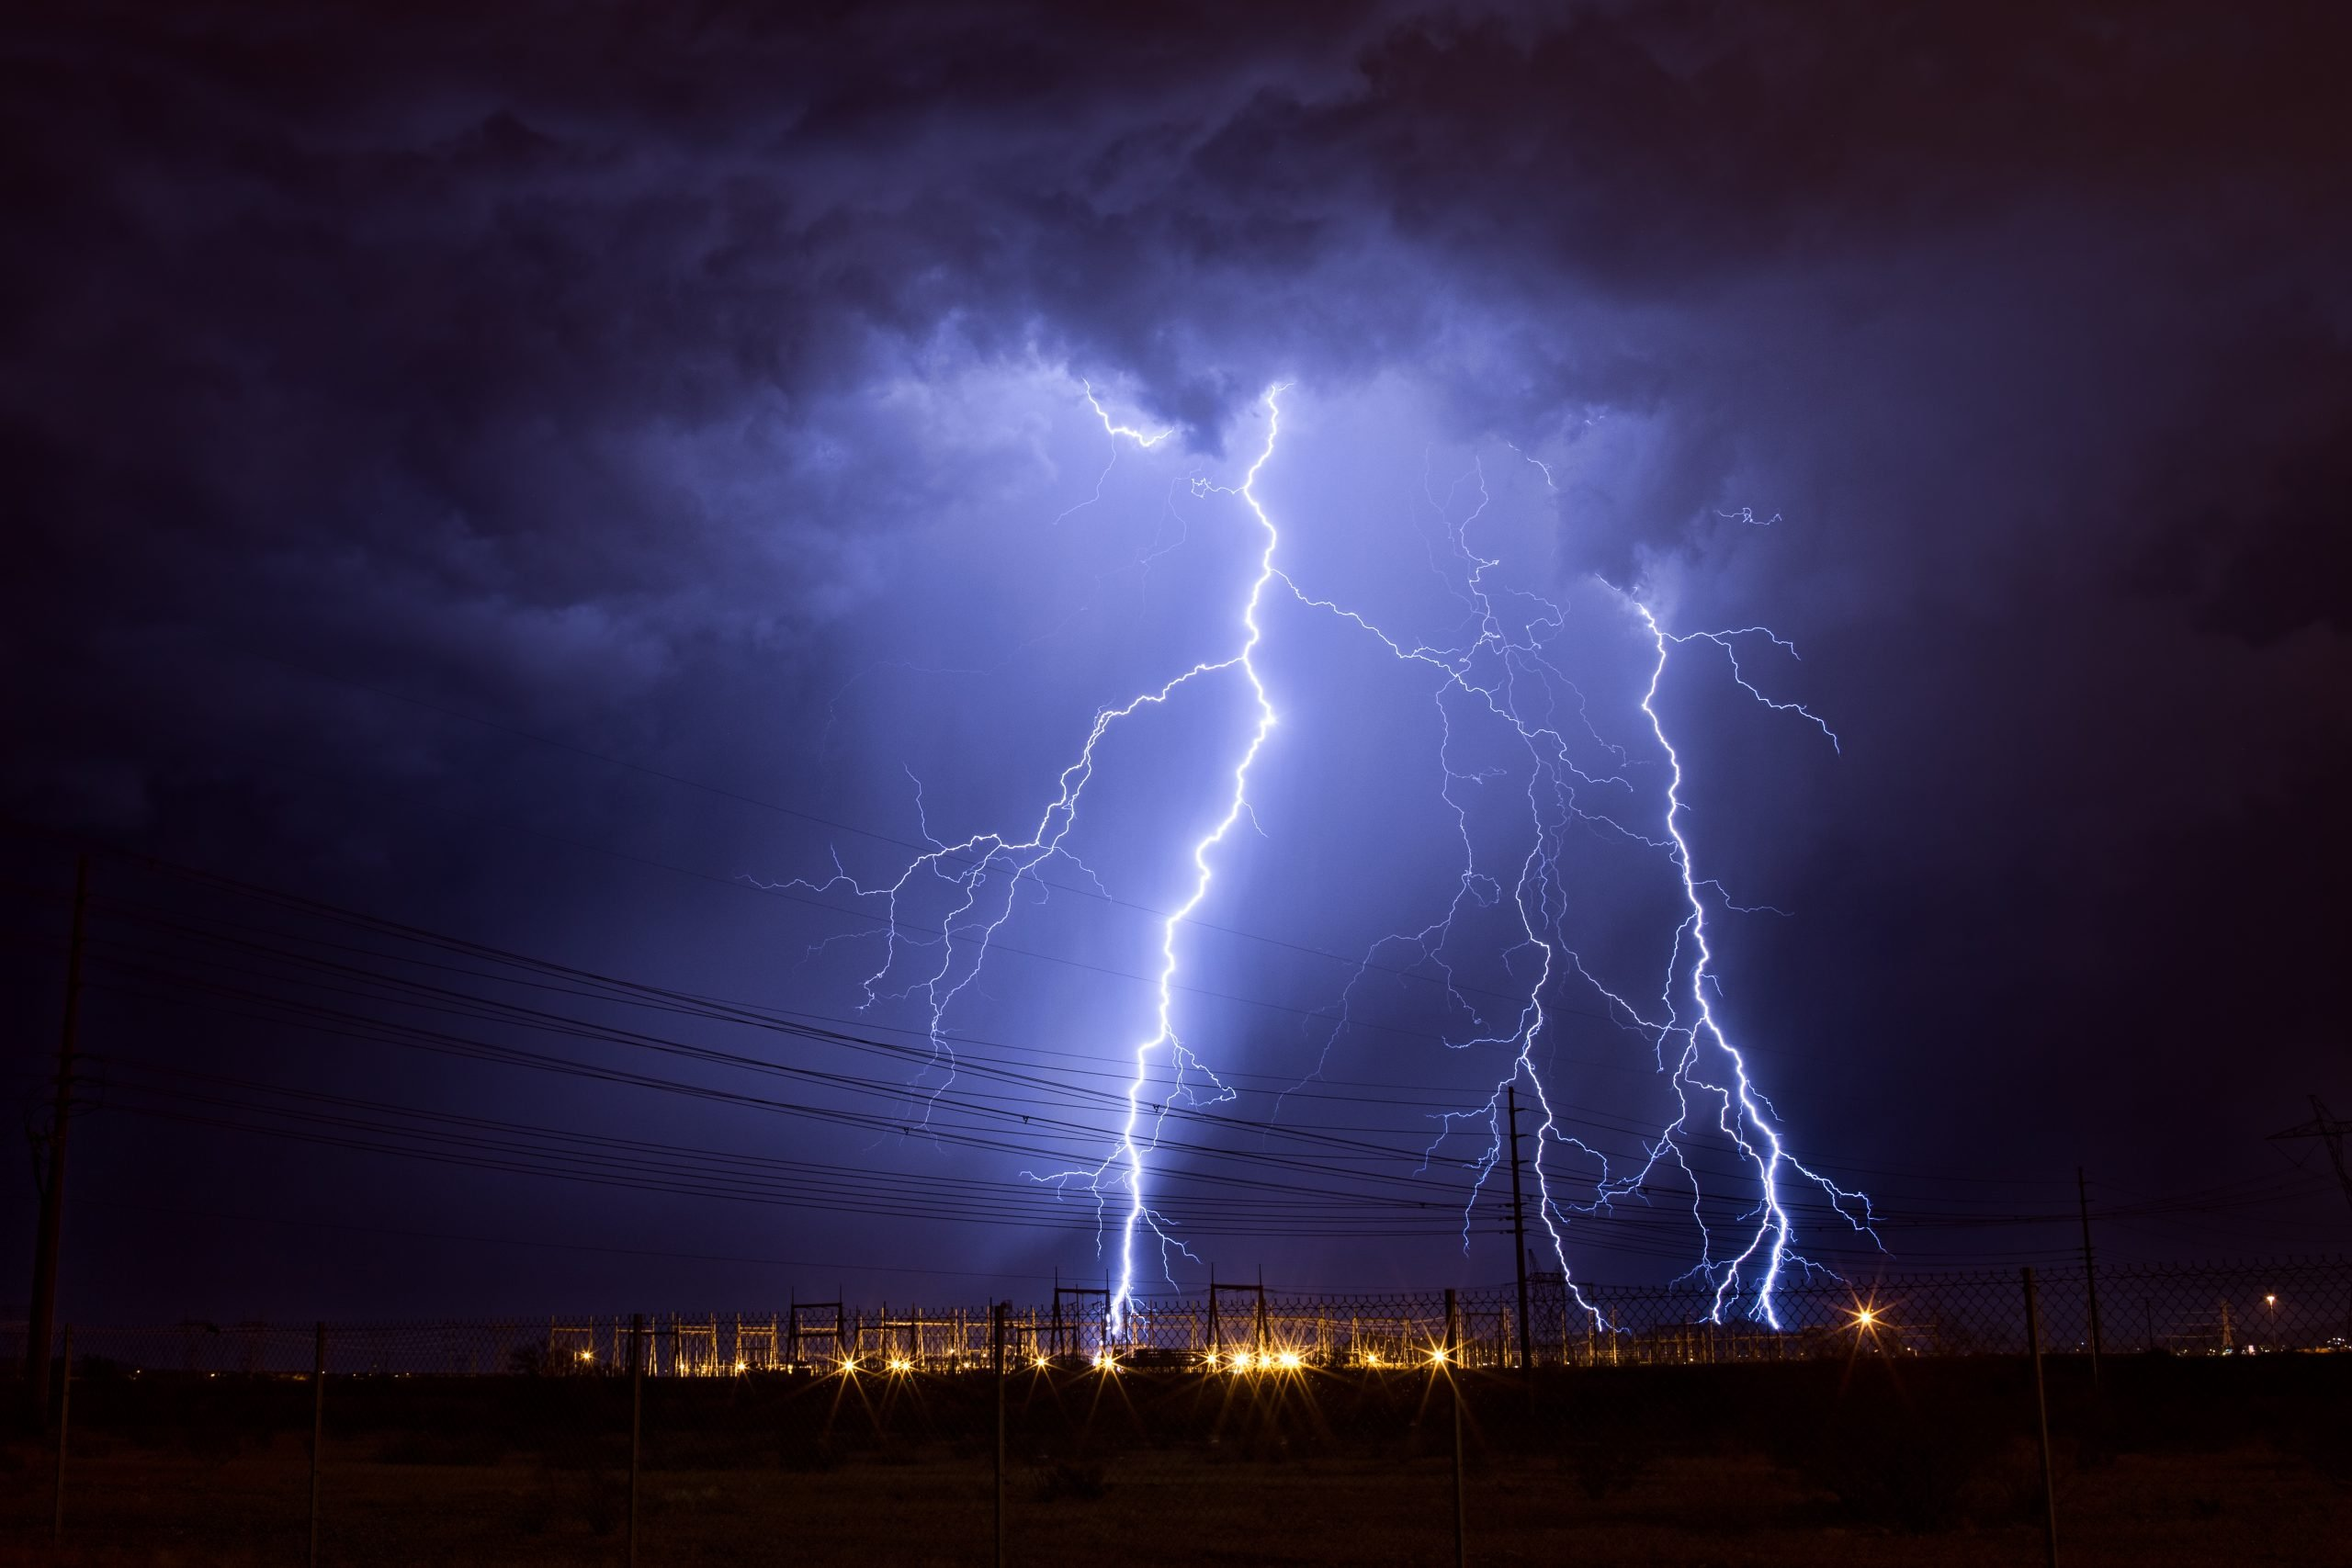 Keeping Properties Safe in the Event of a Power Outage